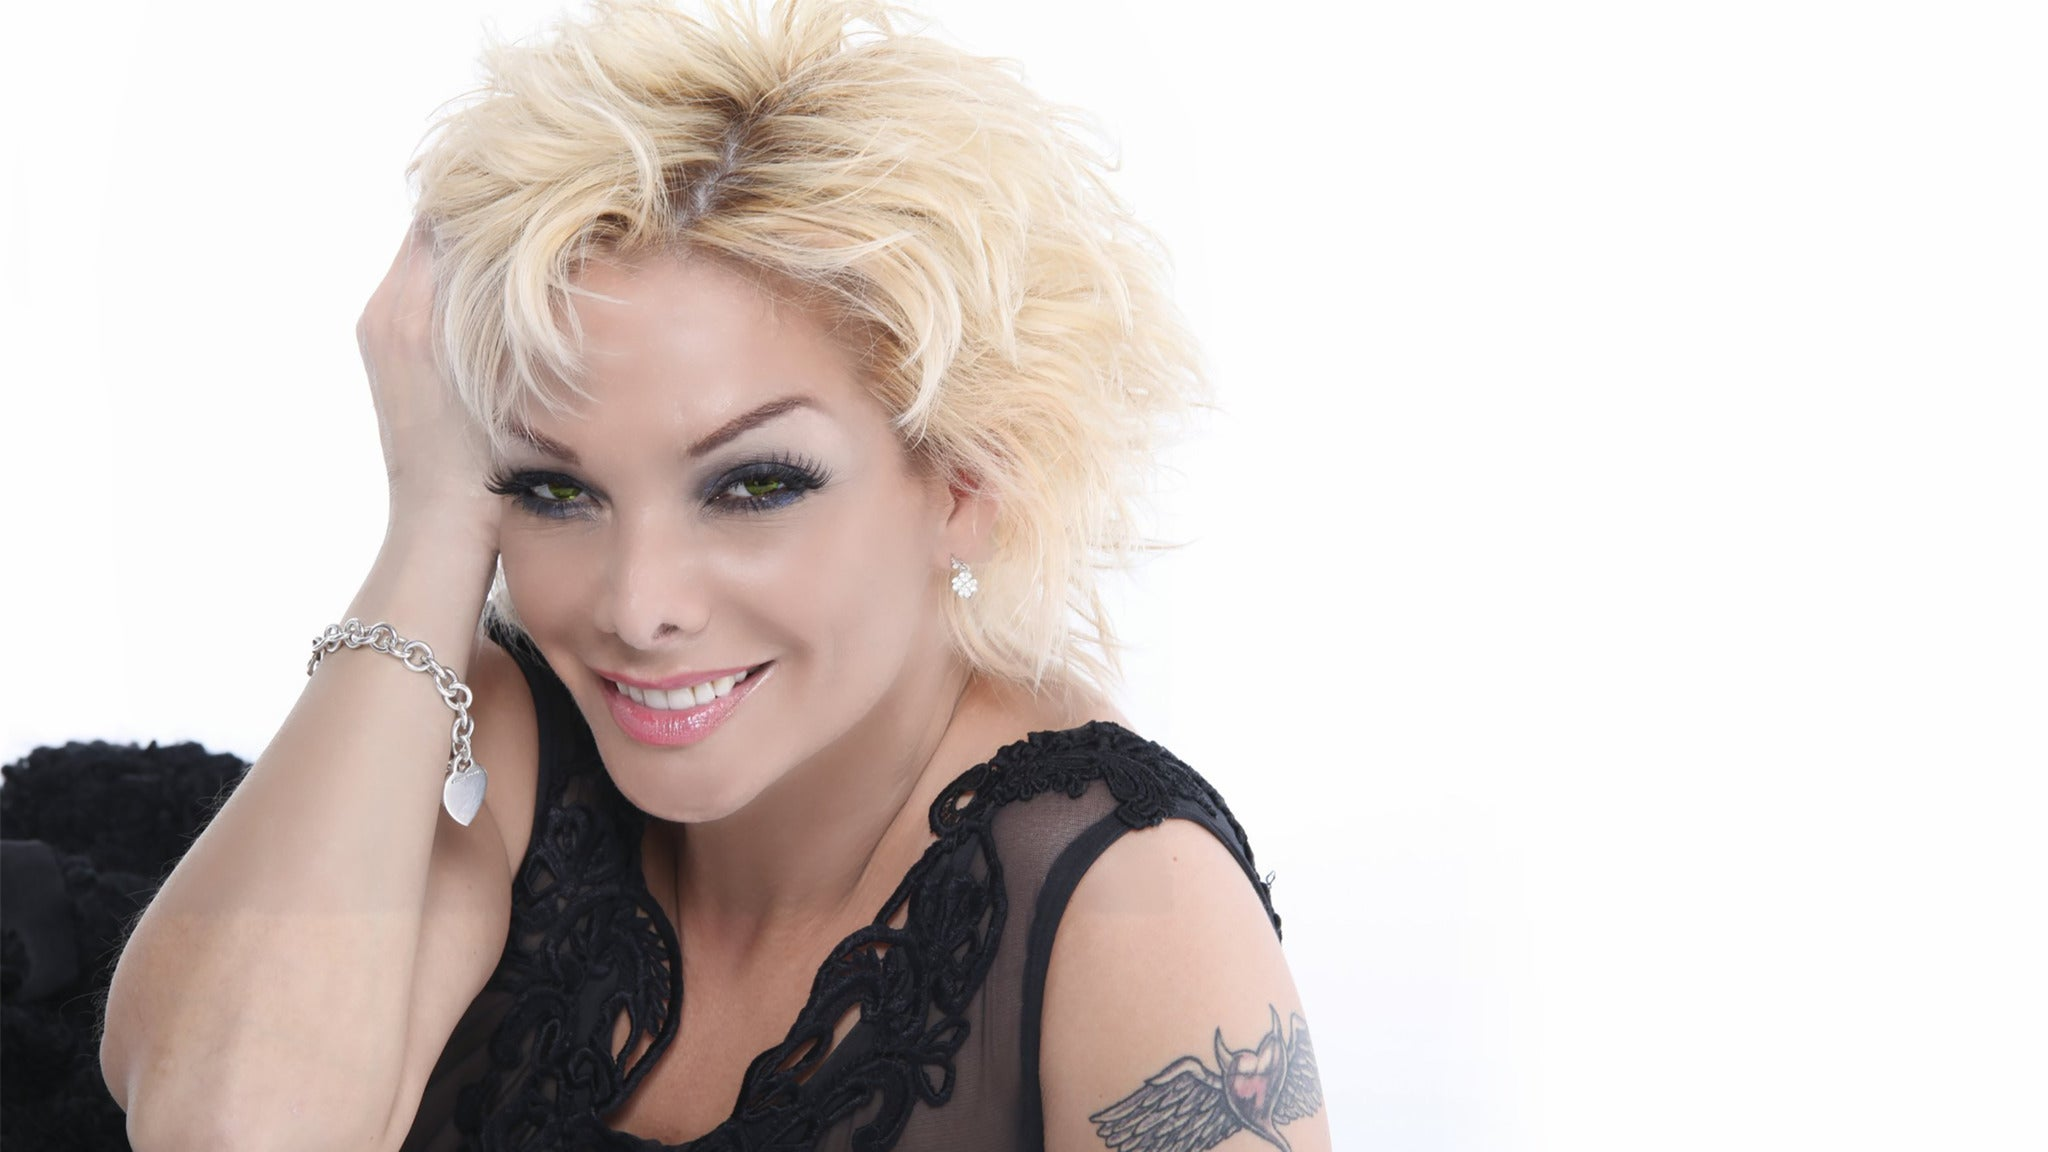 Marisela at Paramount Theatre-Colorado - Denver, CO 80204